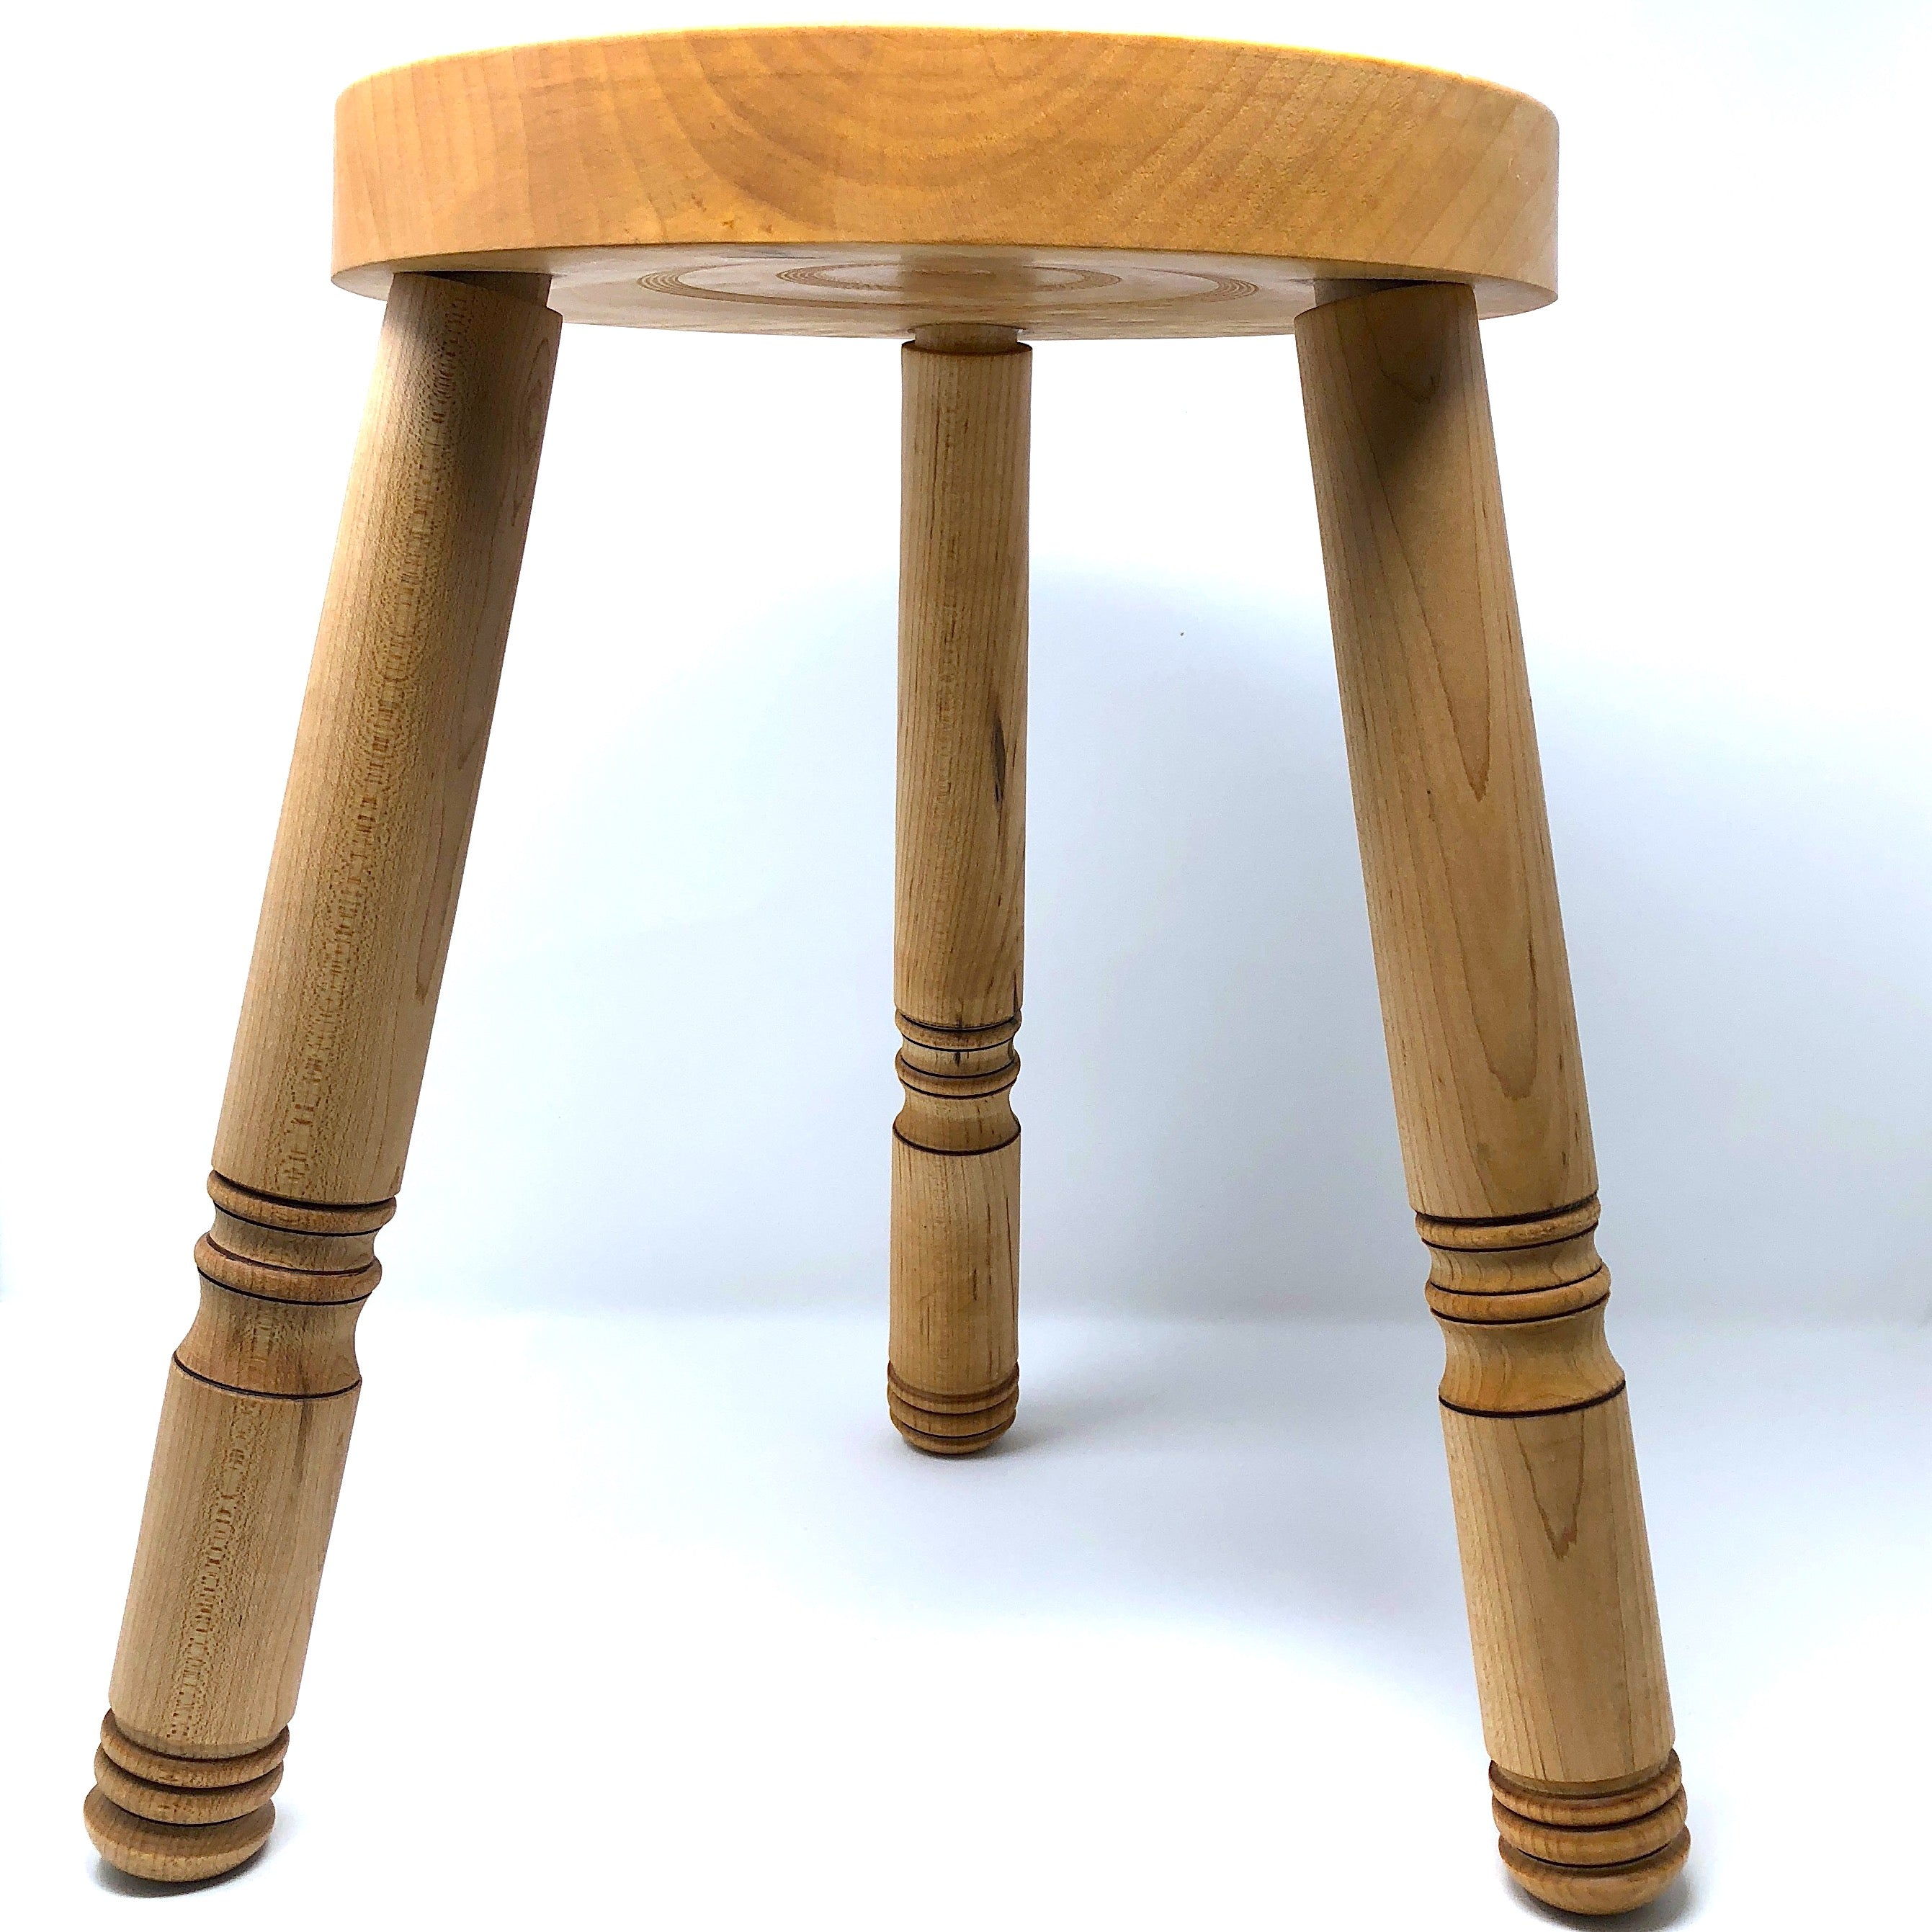 3 Legged Maple Stool